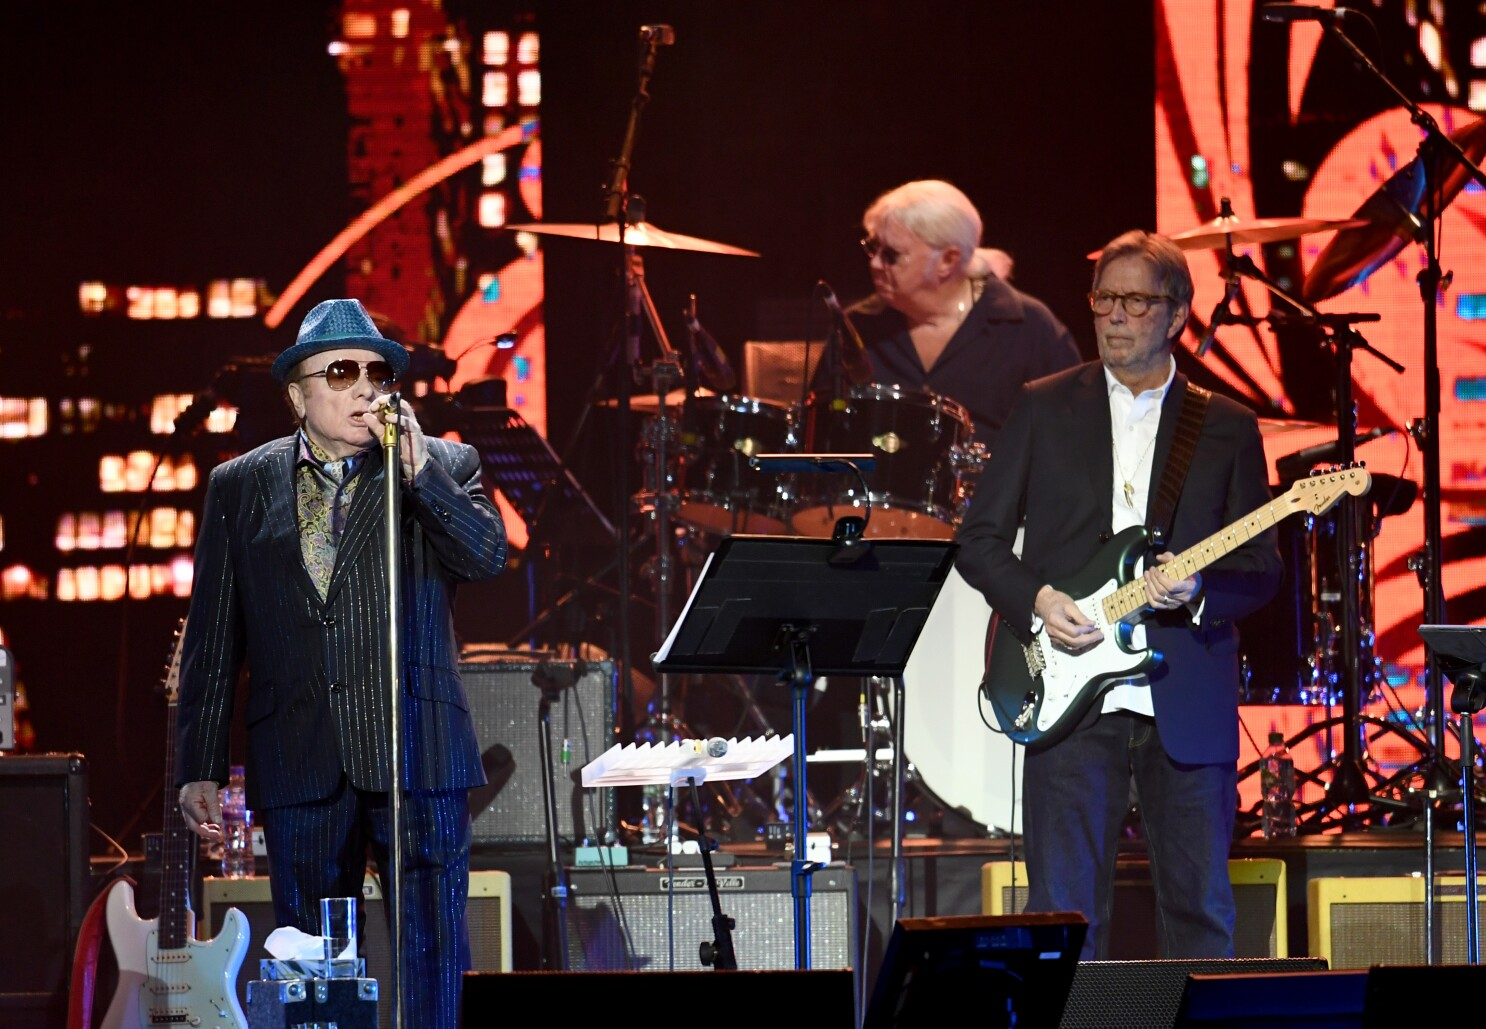 Let S Protest Eric Clapton And Van Morrison S Lockdown Song Los Angeles Times